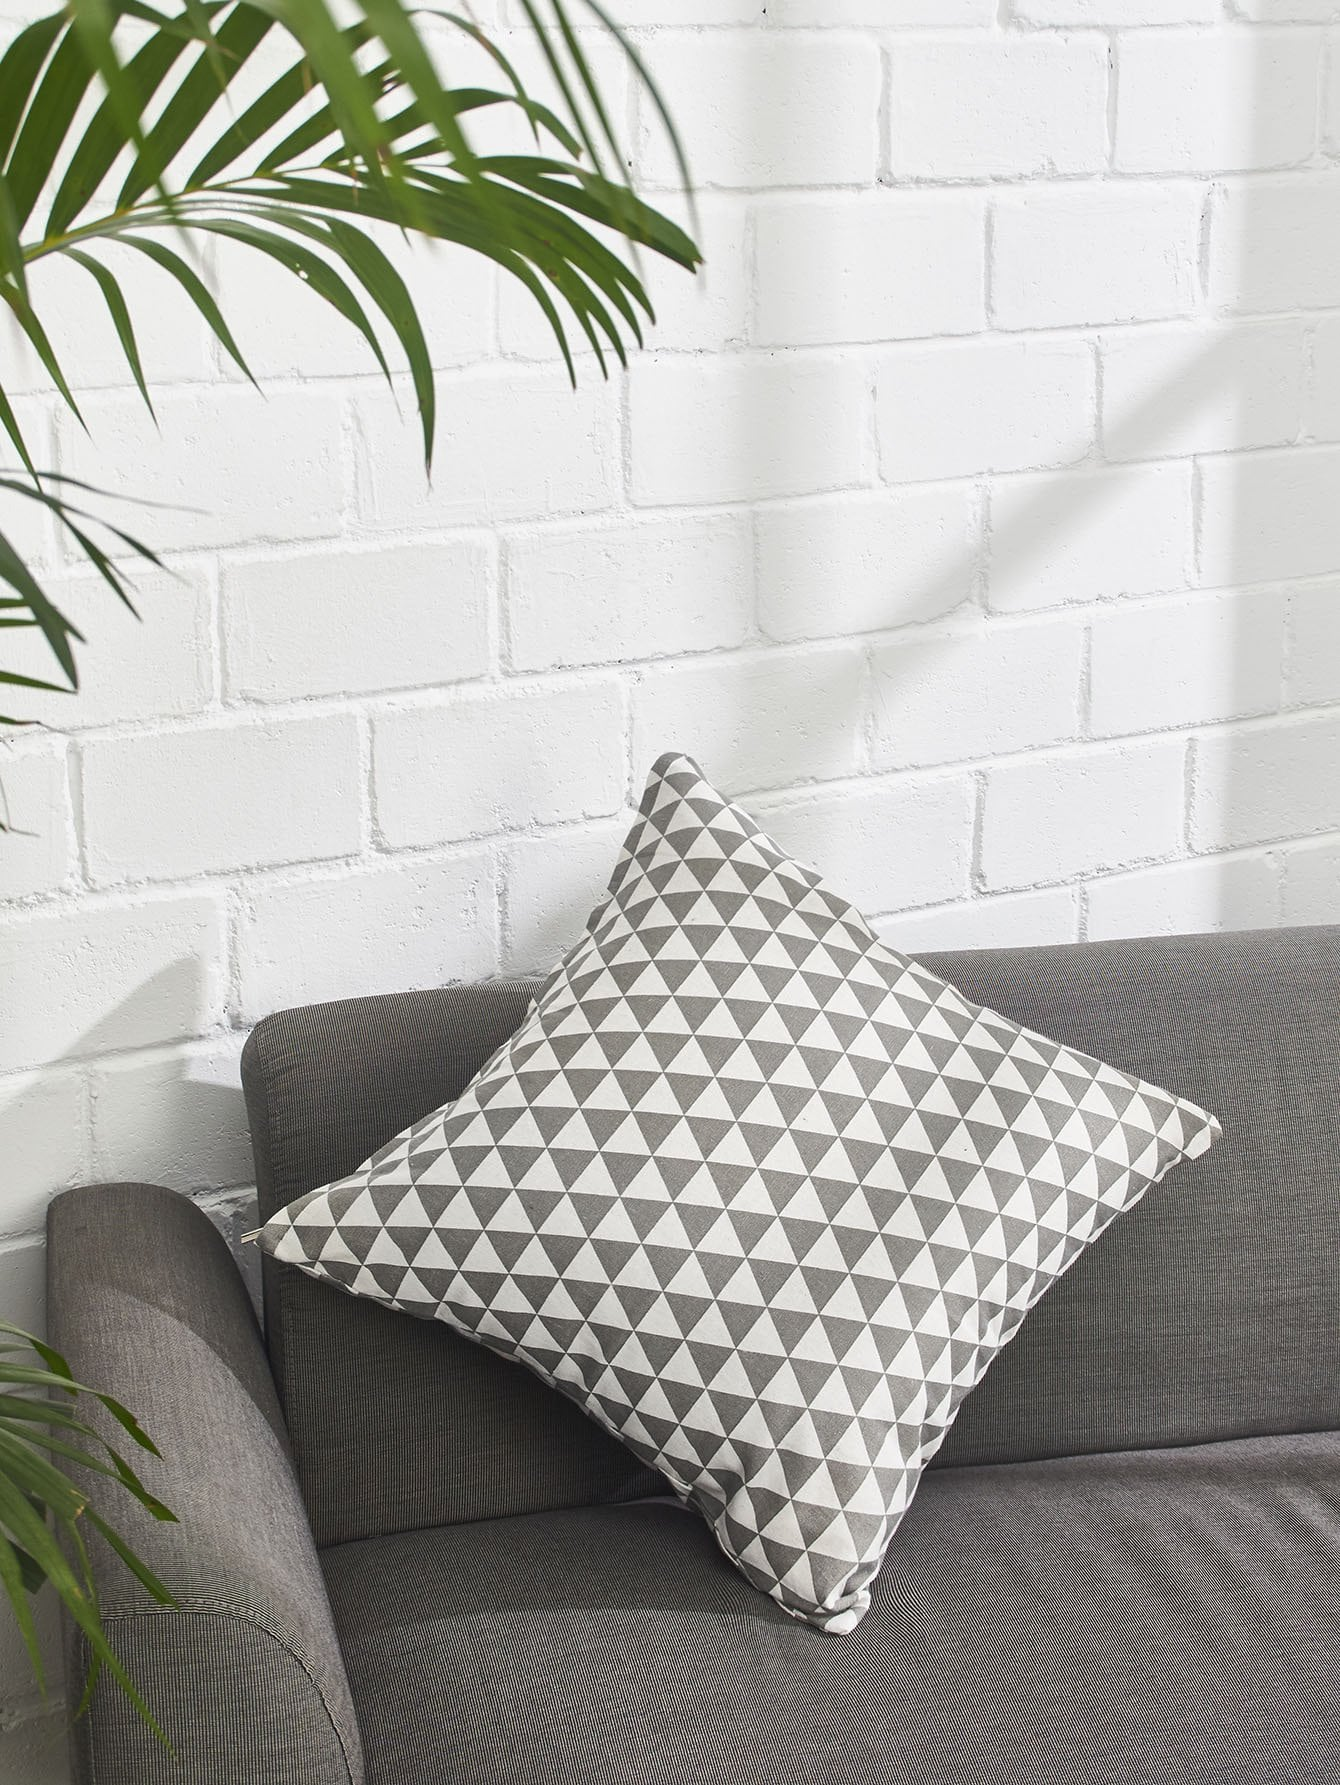 Allover Geometric Print Pillowcase Cover allover grid print pillowcase cover